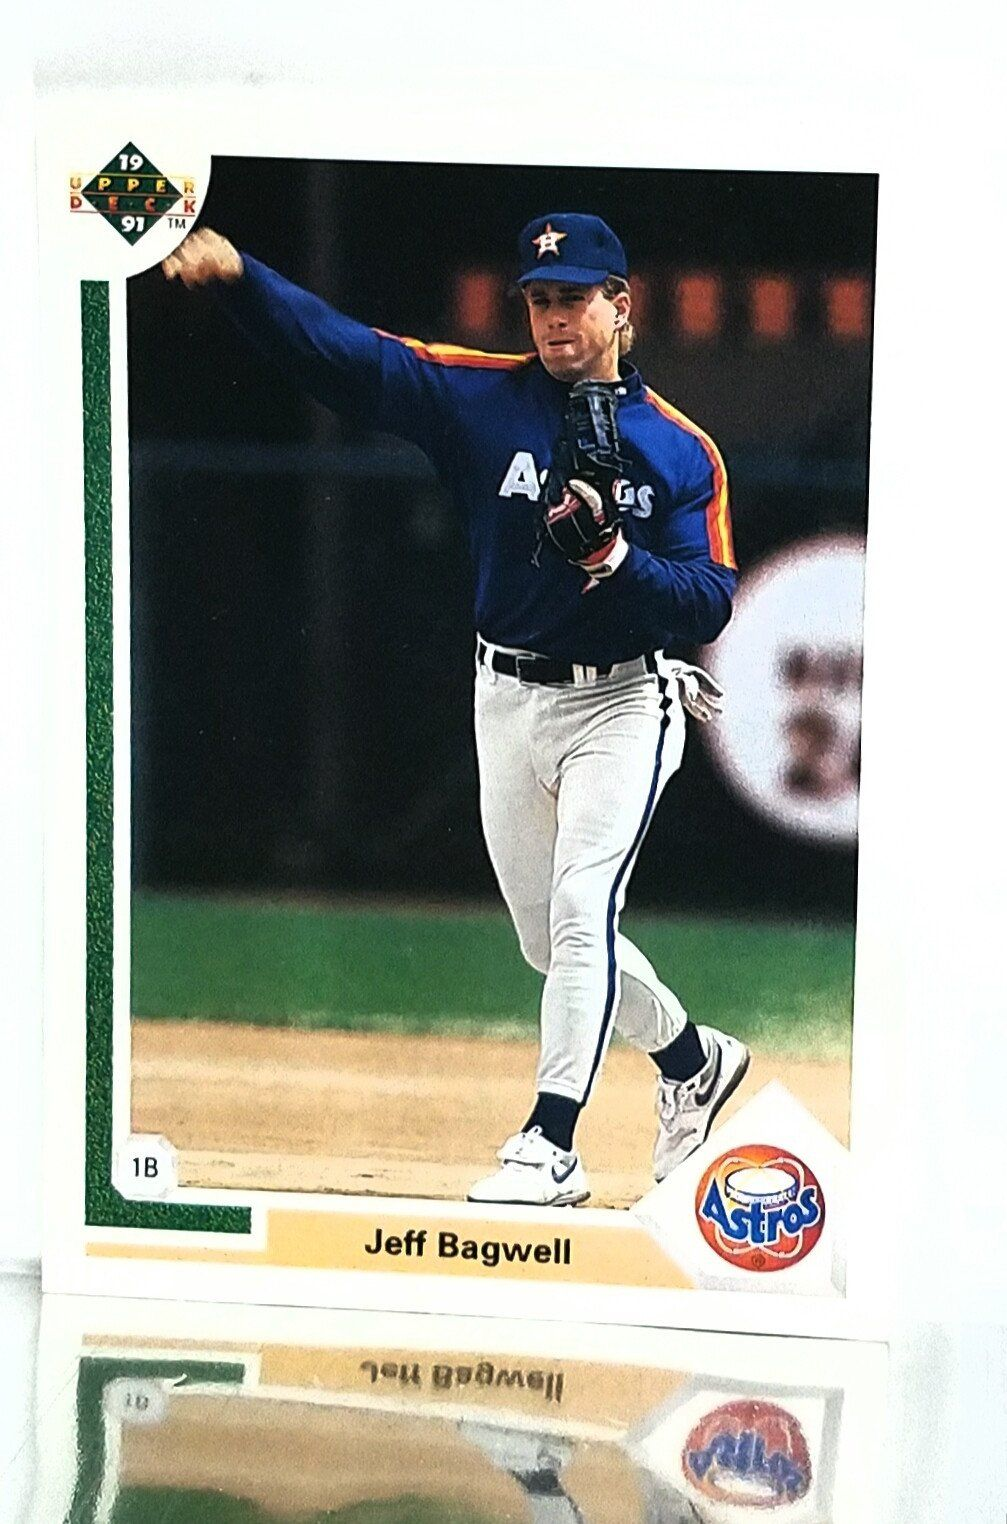 1991 upper deck 755 jeff bagwell rookie card elected to